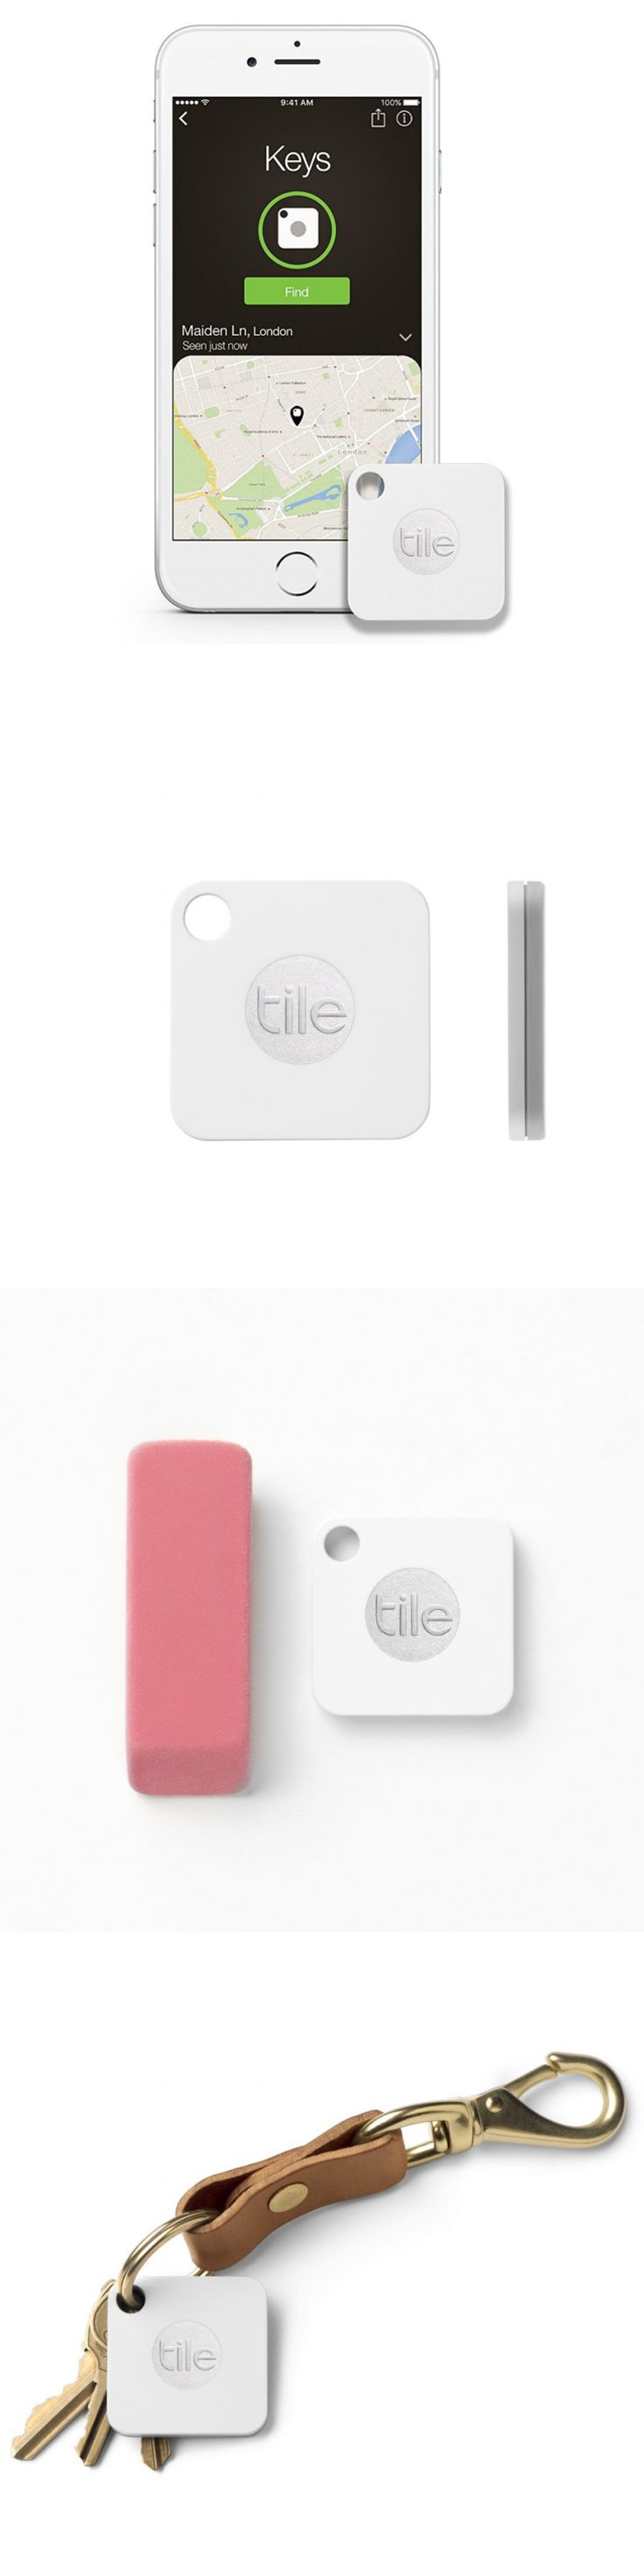 Tracking Devices: Cell Phone Gps Tracker Bluetooth Key Chain Tile Device Locator App Finder Pulse -> BUY IT NOW ONLY: $33.99 on eBay!